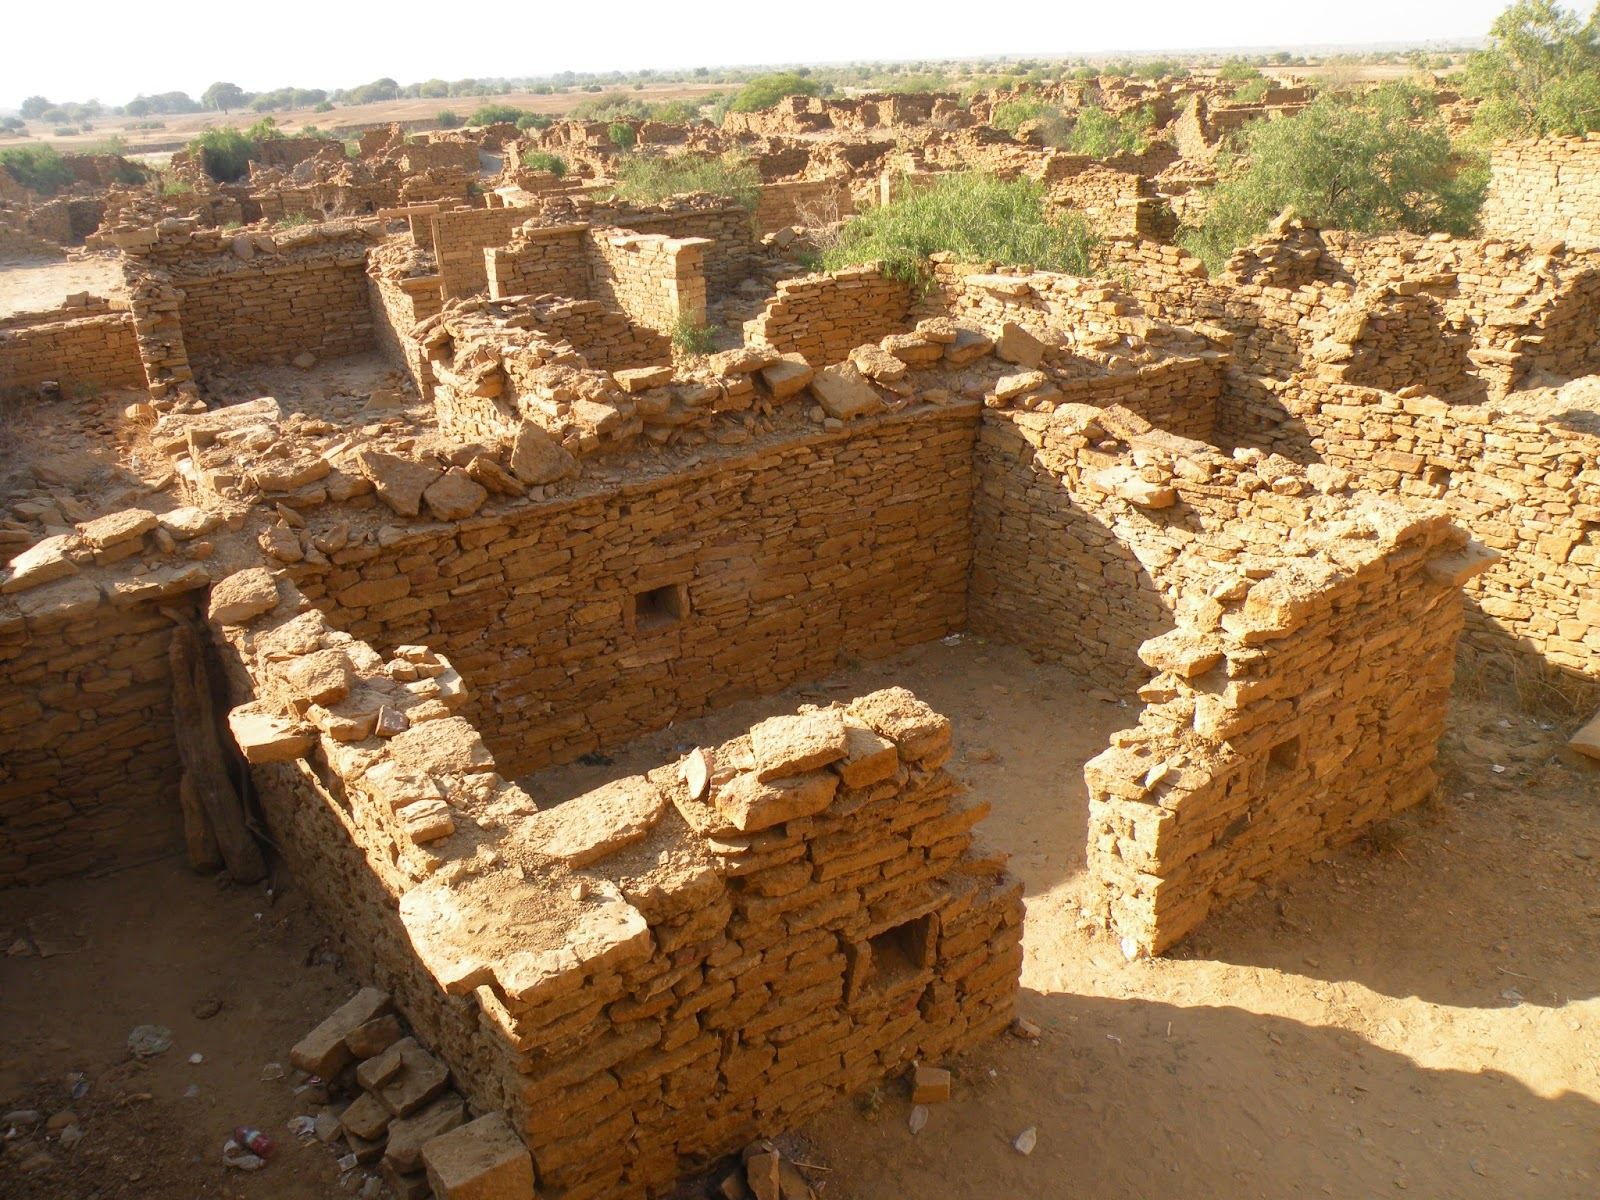 Abandoned hamlet inward Rajasthan close Jaisalmer India travel destinations: Kuldhara: The Village That was Abandoned Overnight.